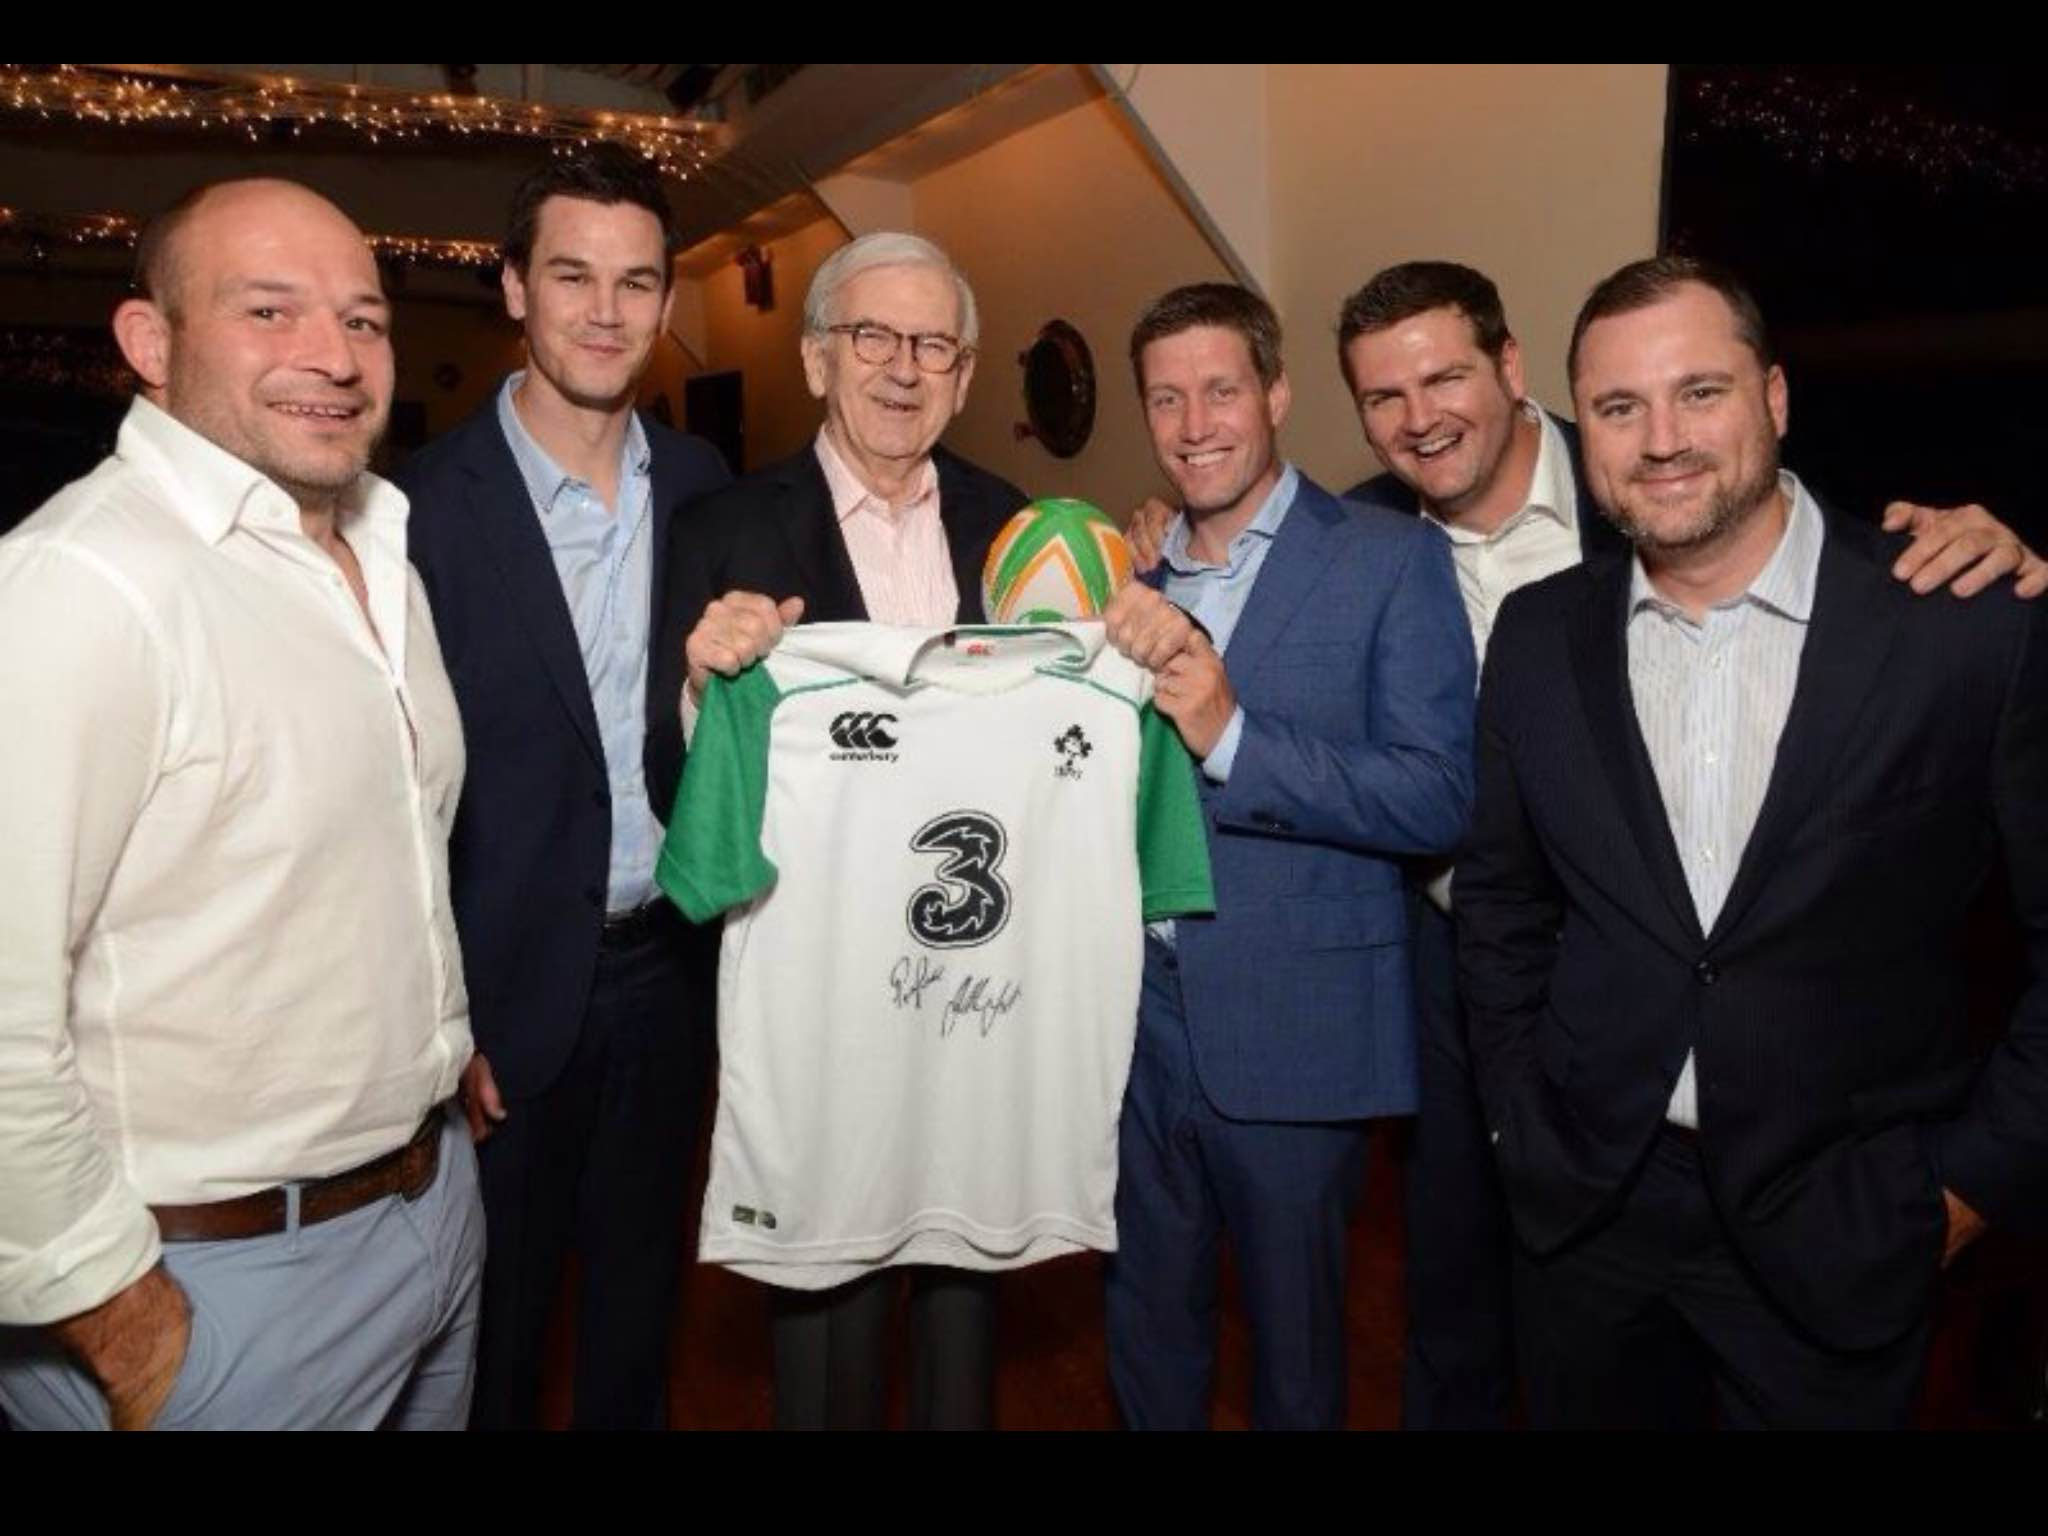 L to R (Rory Best, Johnny Sexton, Buzzy O'Keefe, Ronan O'Gara, David Evans, Sean Gaffey